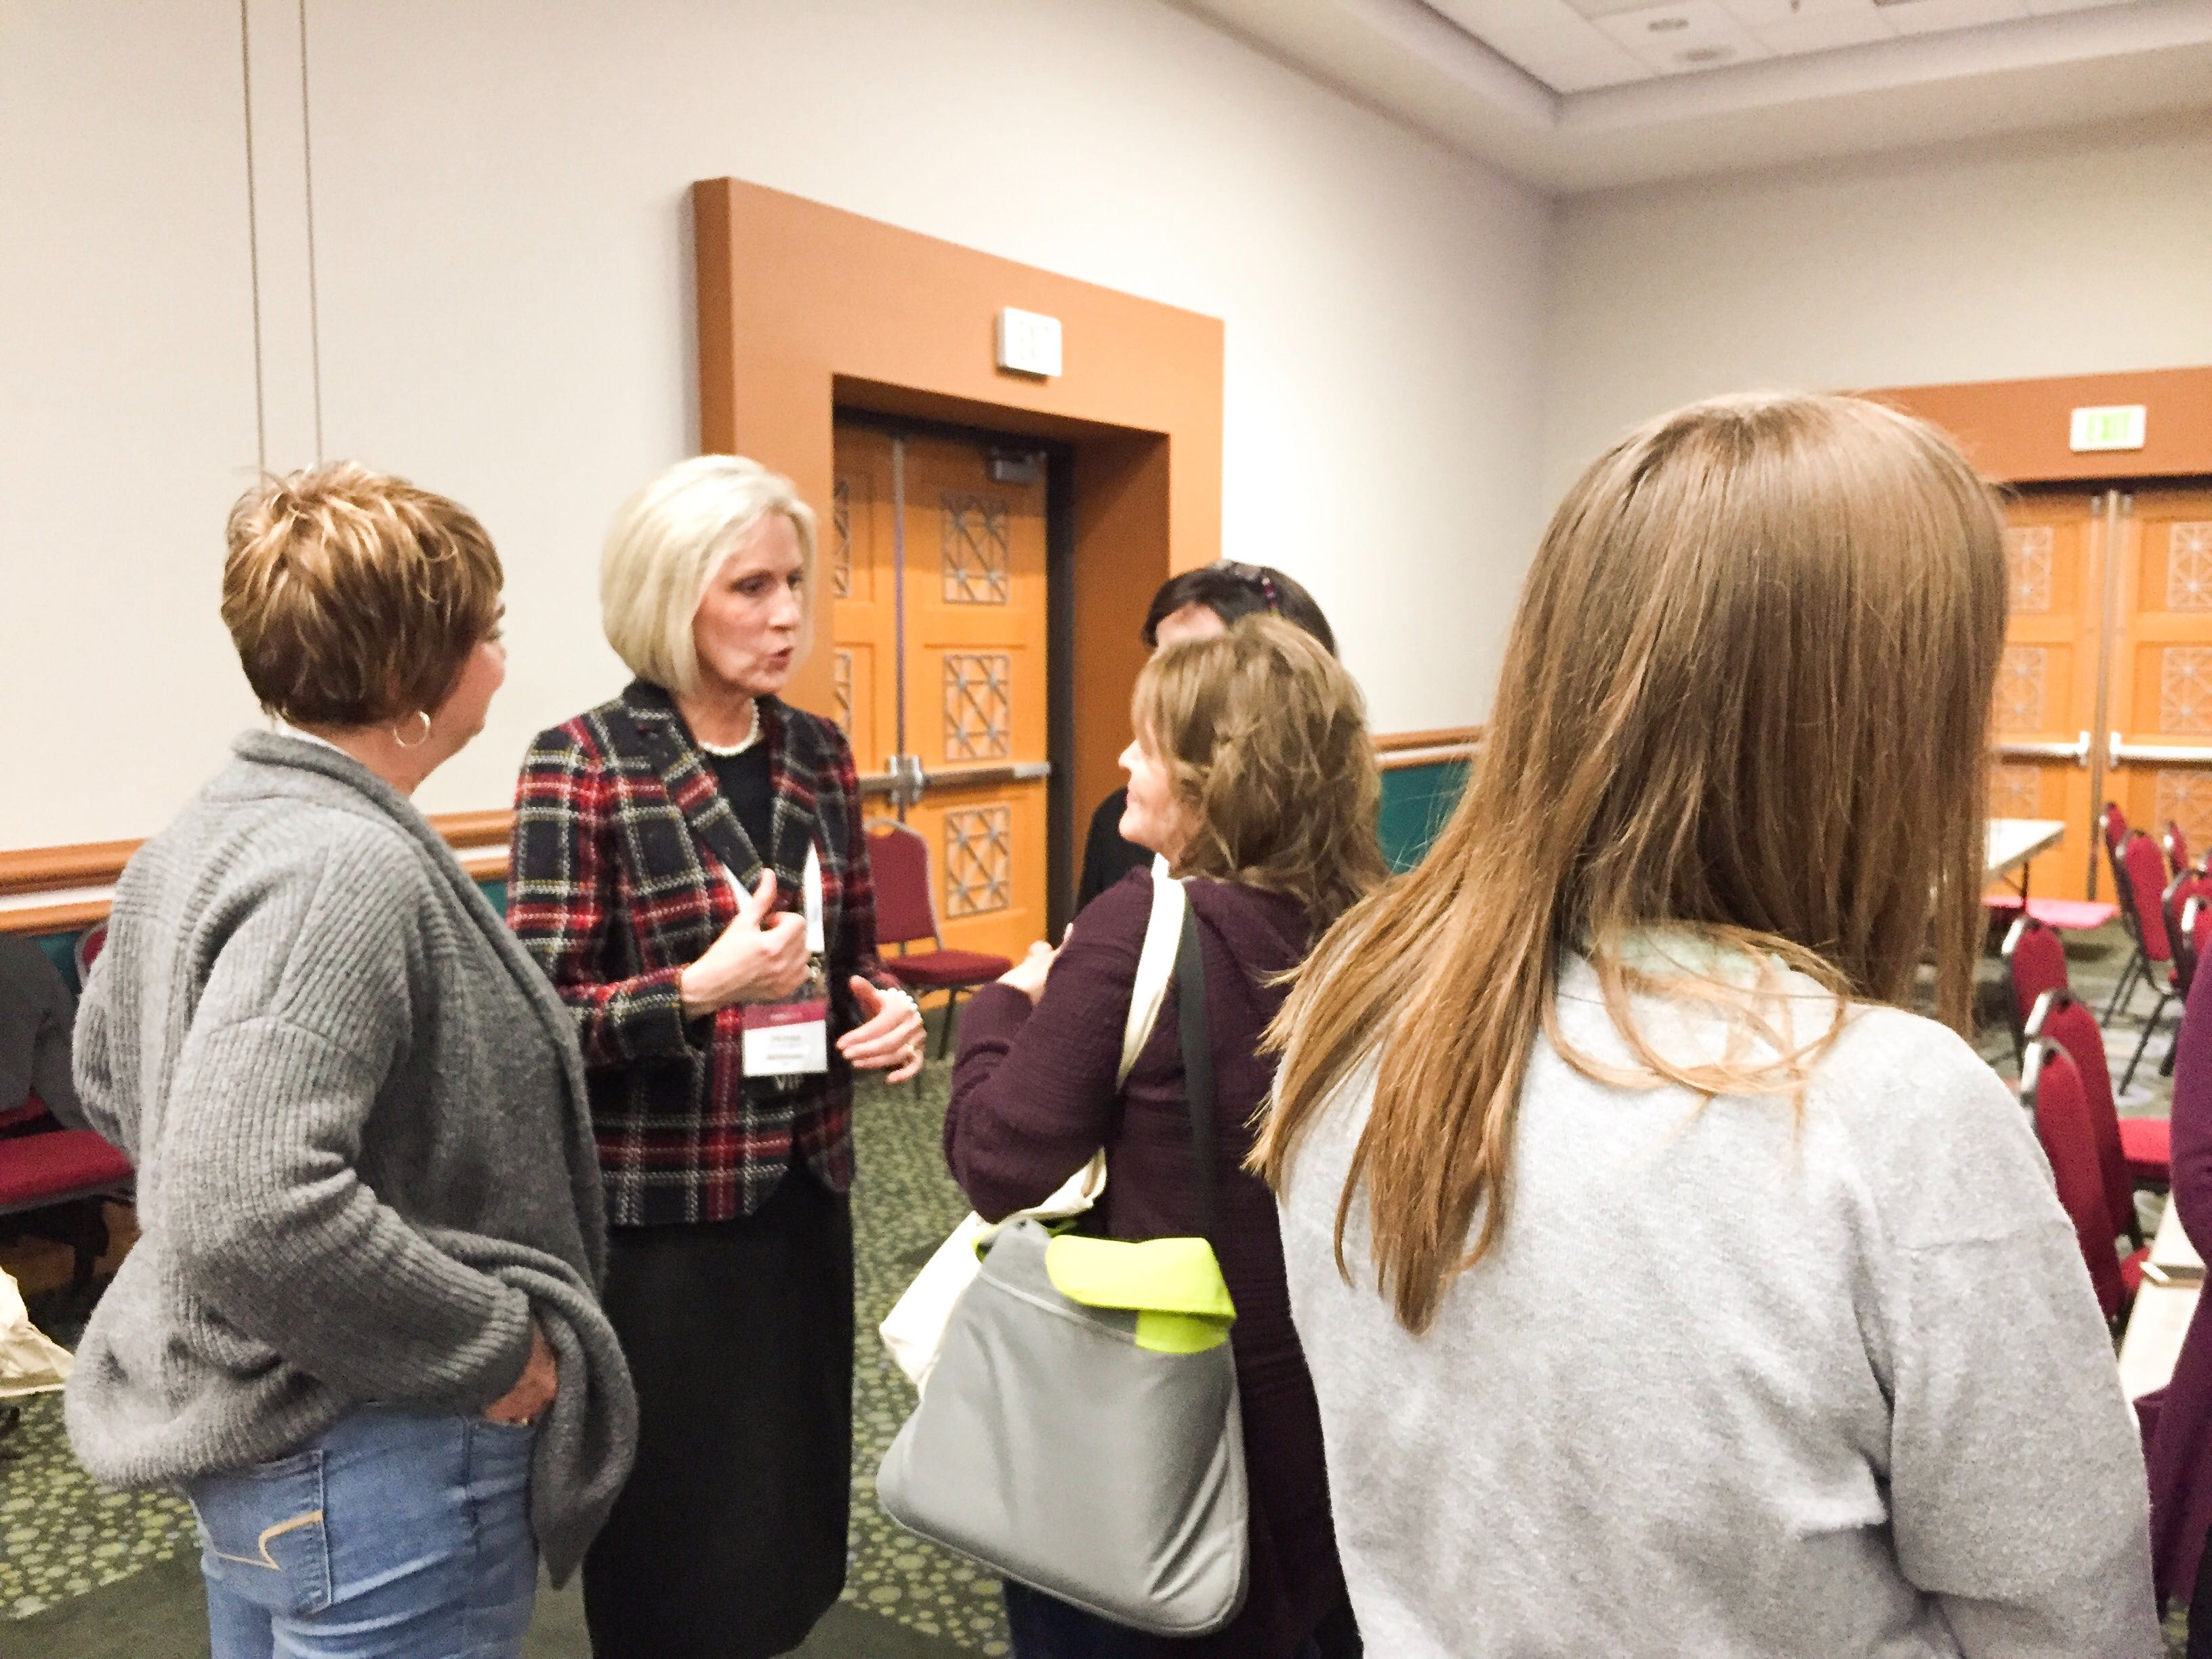 Sister Jones meets with attendees following the Light Keepers workshop at RootsTech on Friday, March 1, 2019.